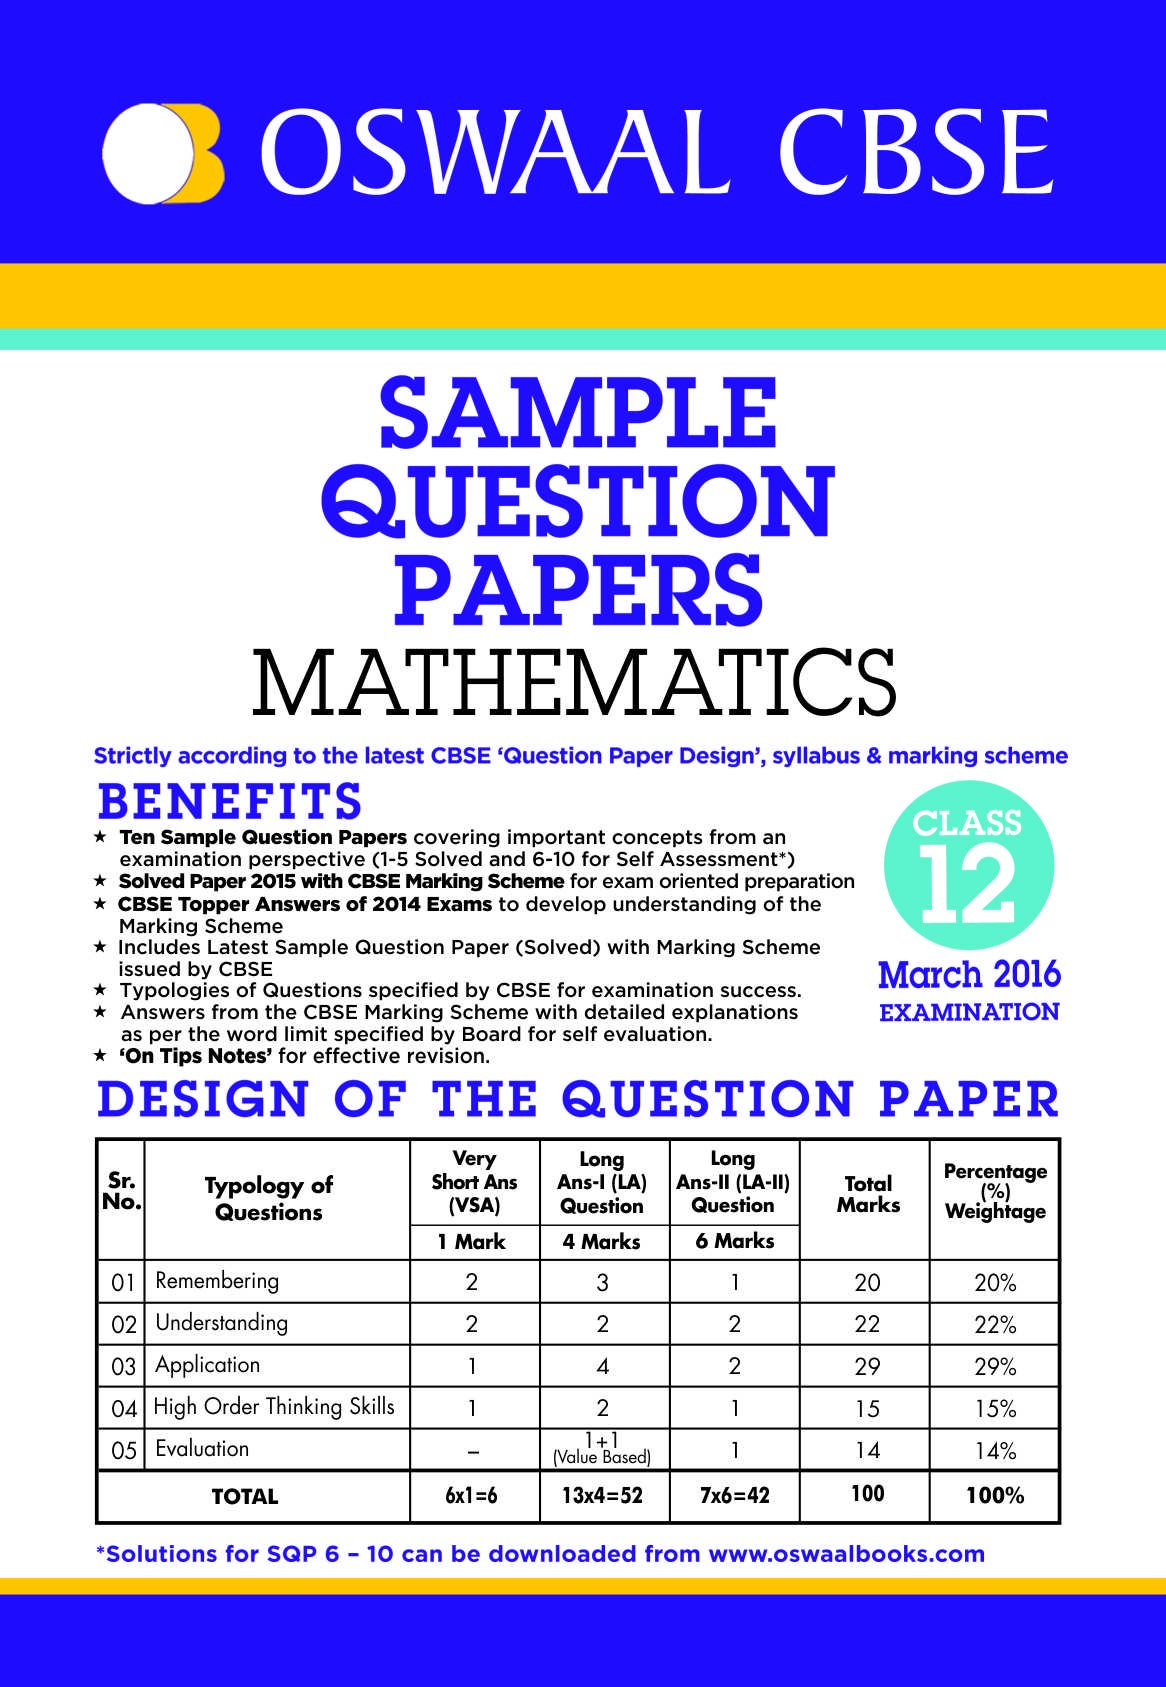 Amazon buy oswaal cbse sample question papers for class 12 amazon buy oswaal cbse sample question papers for class 12 mathematics for 2016 exams book online at low prices in india oswaal cbse sample question malvernweather Choice Image